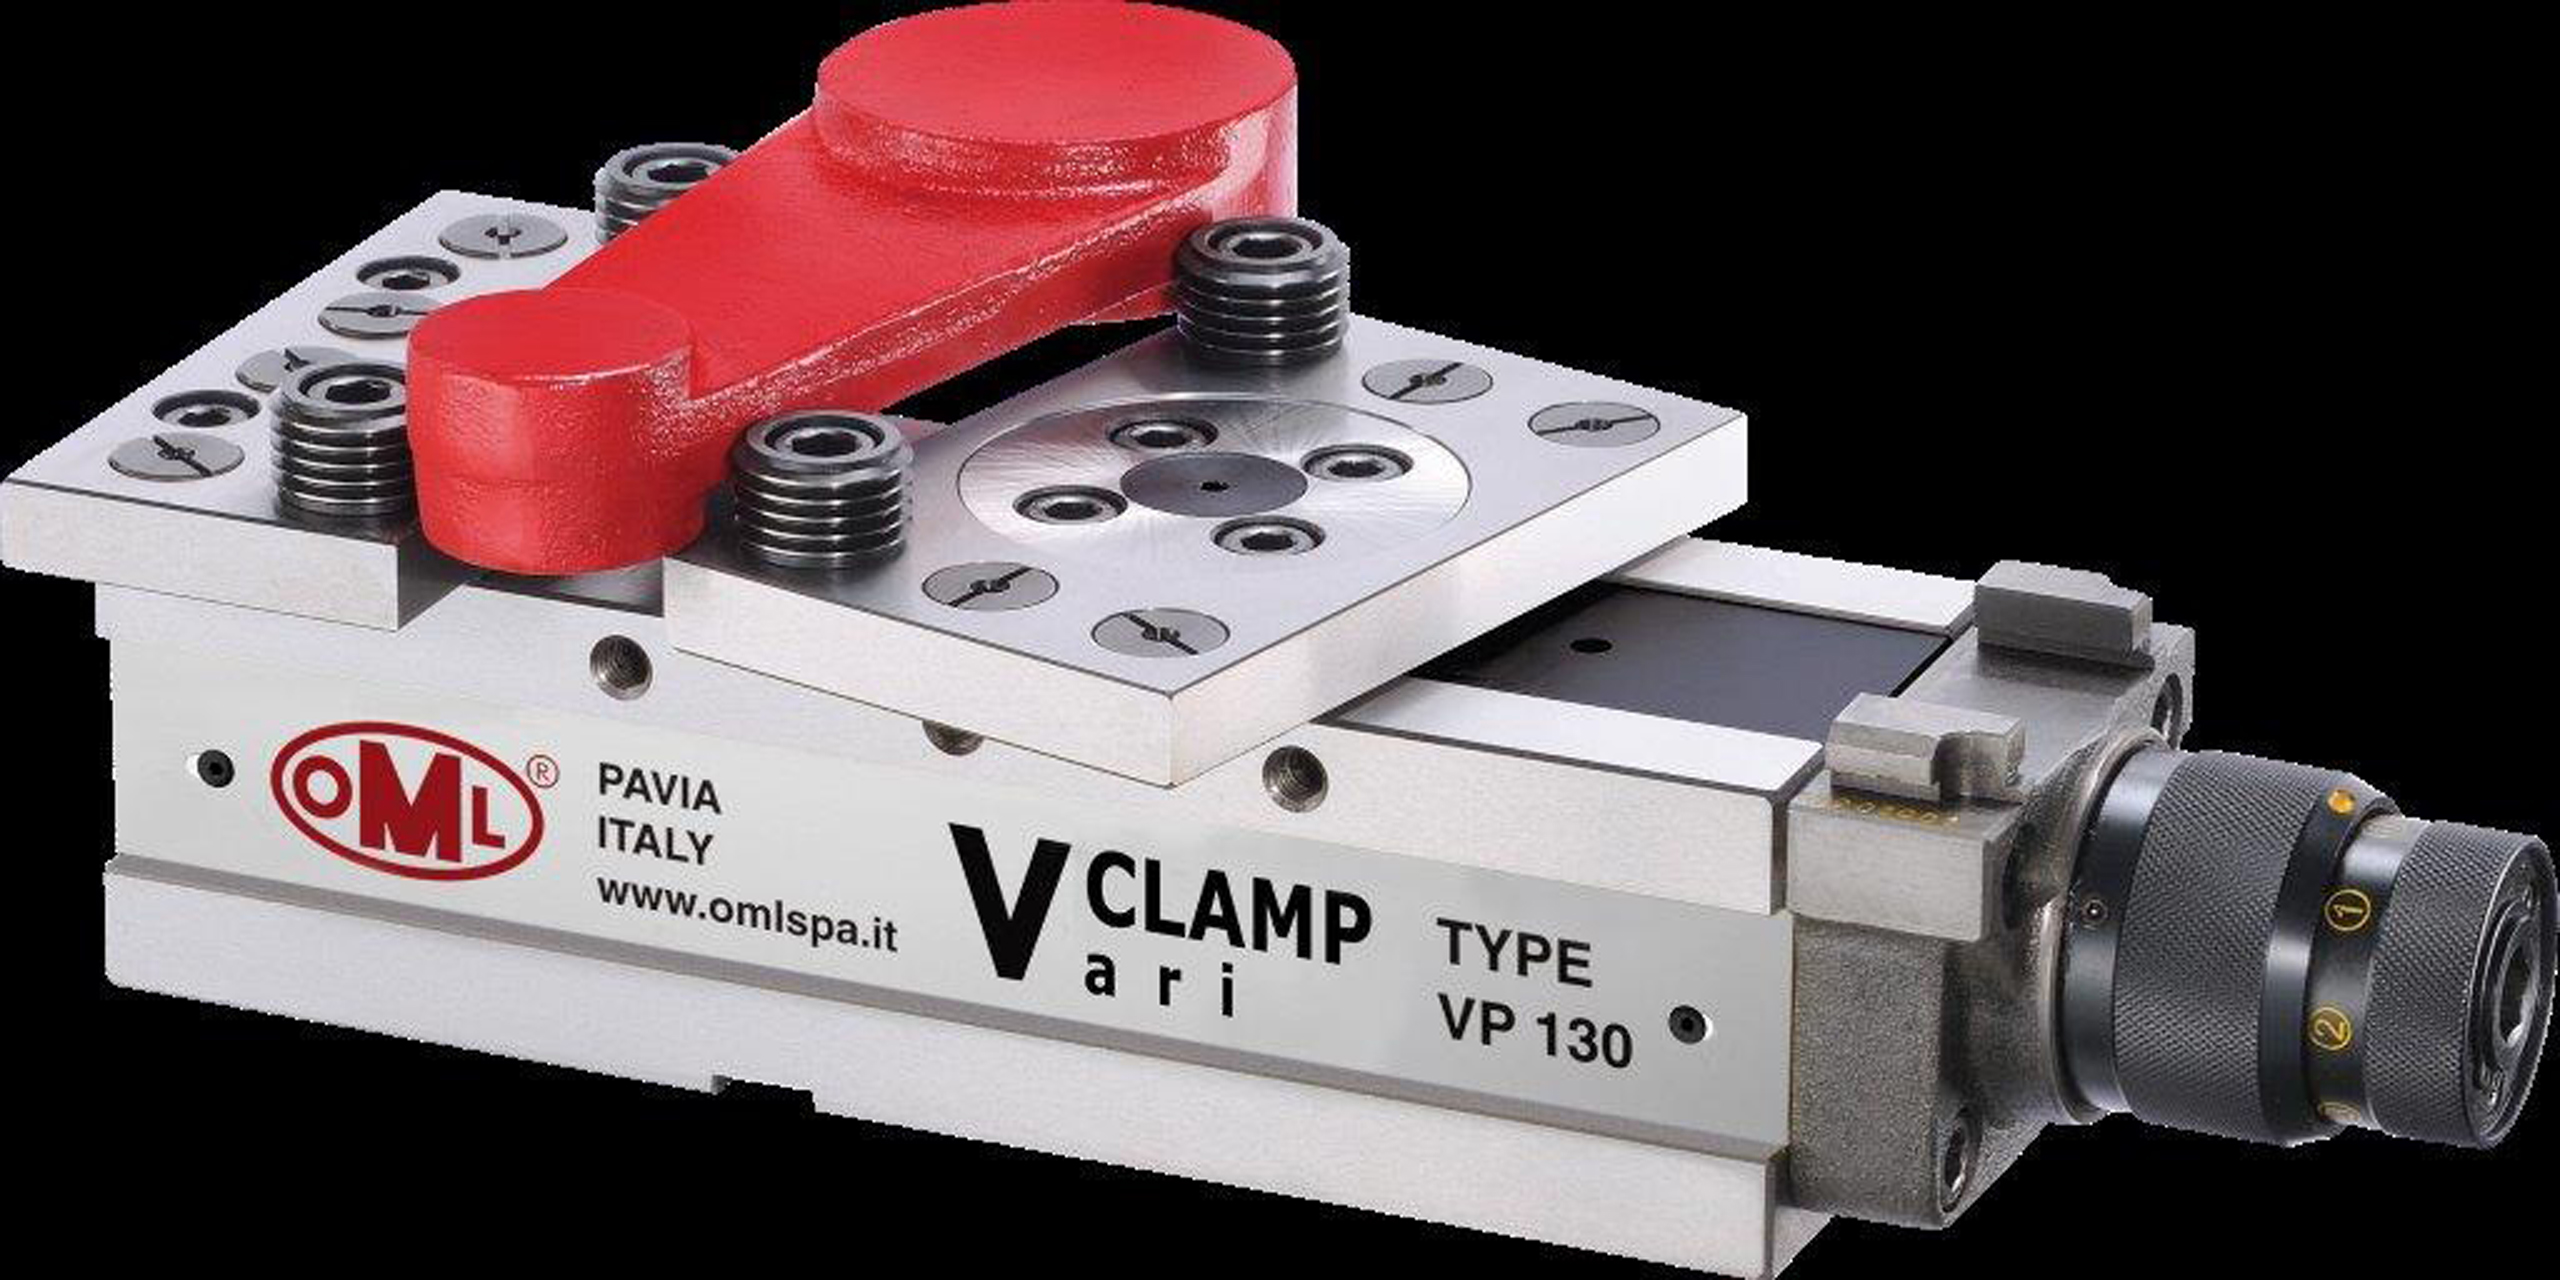 Clamping for Difficult Machining Applications